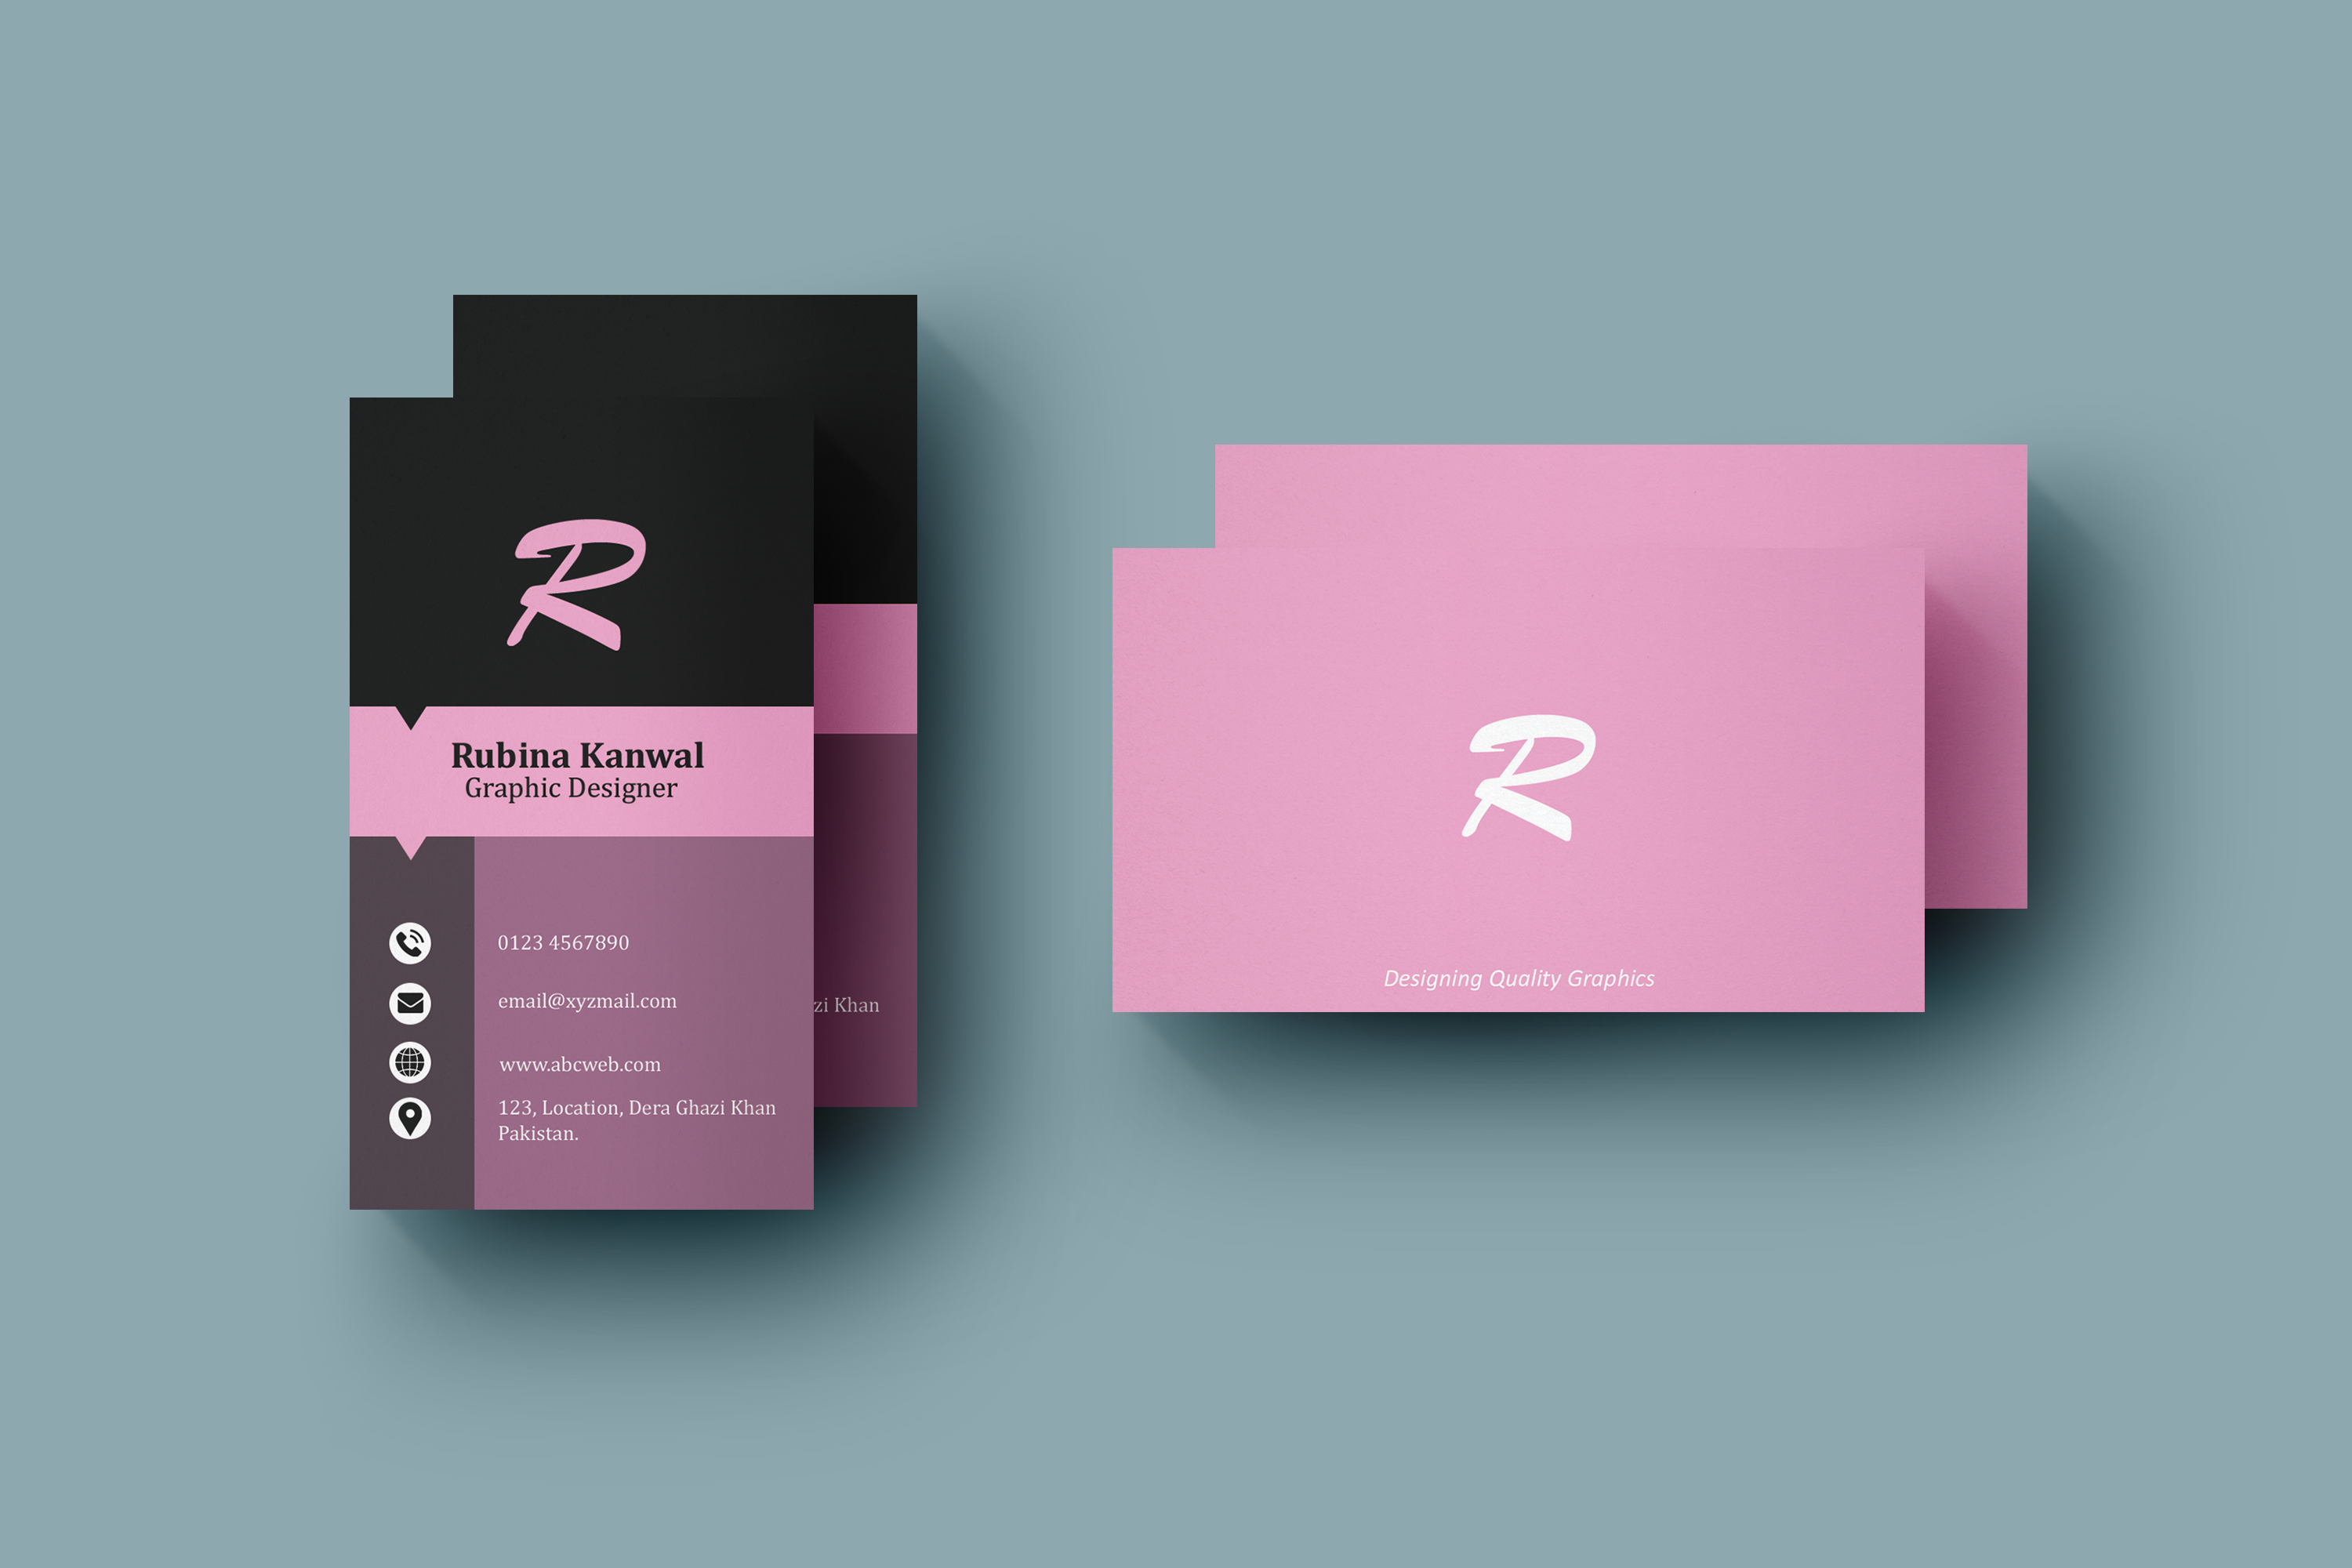 Business Card Design - Clean, Minimal, Professional